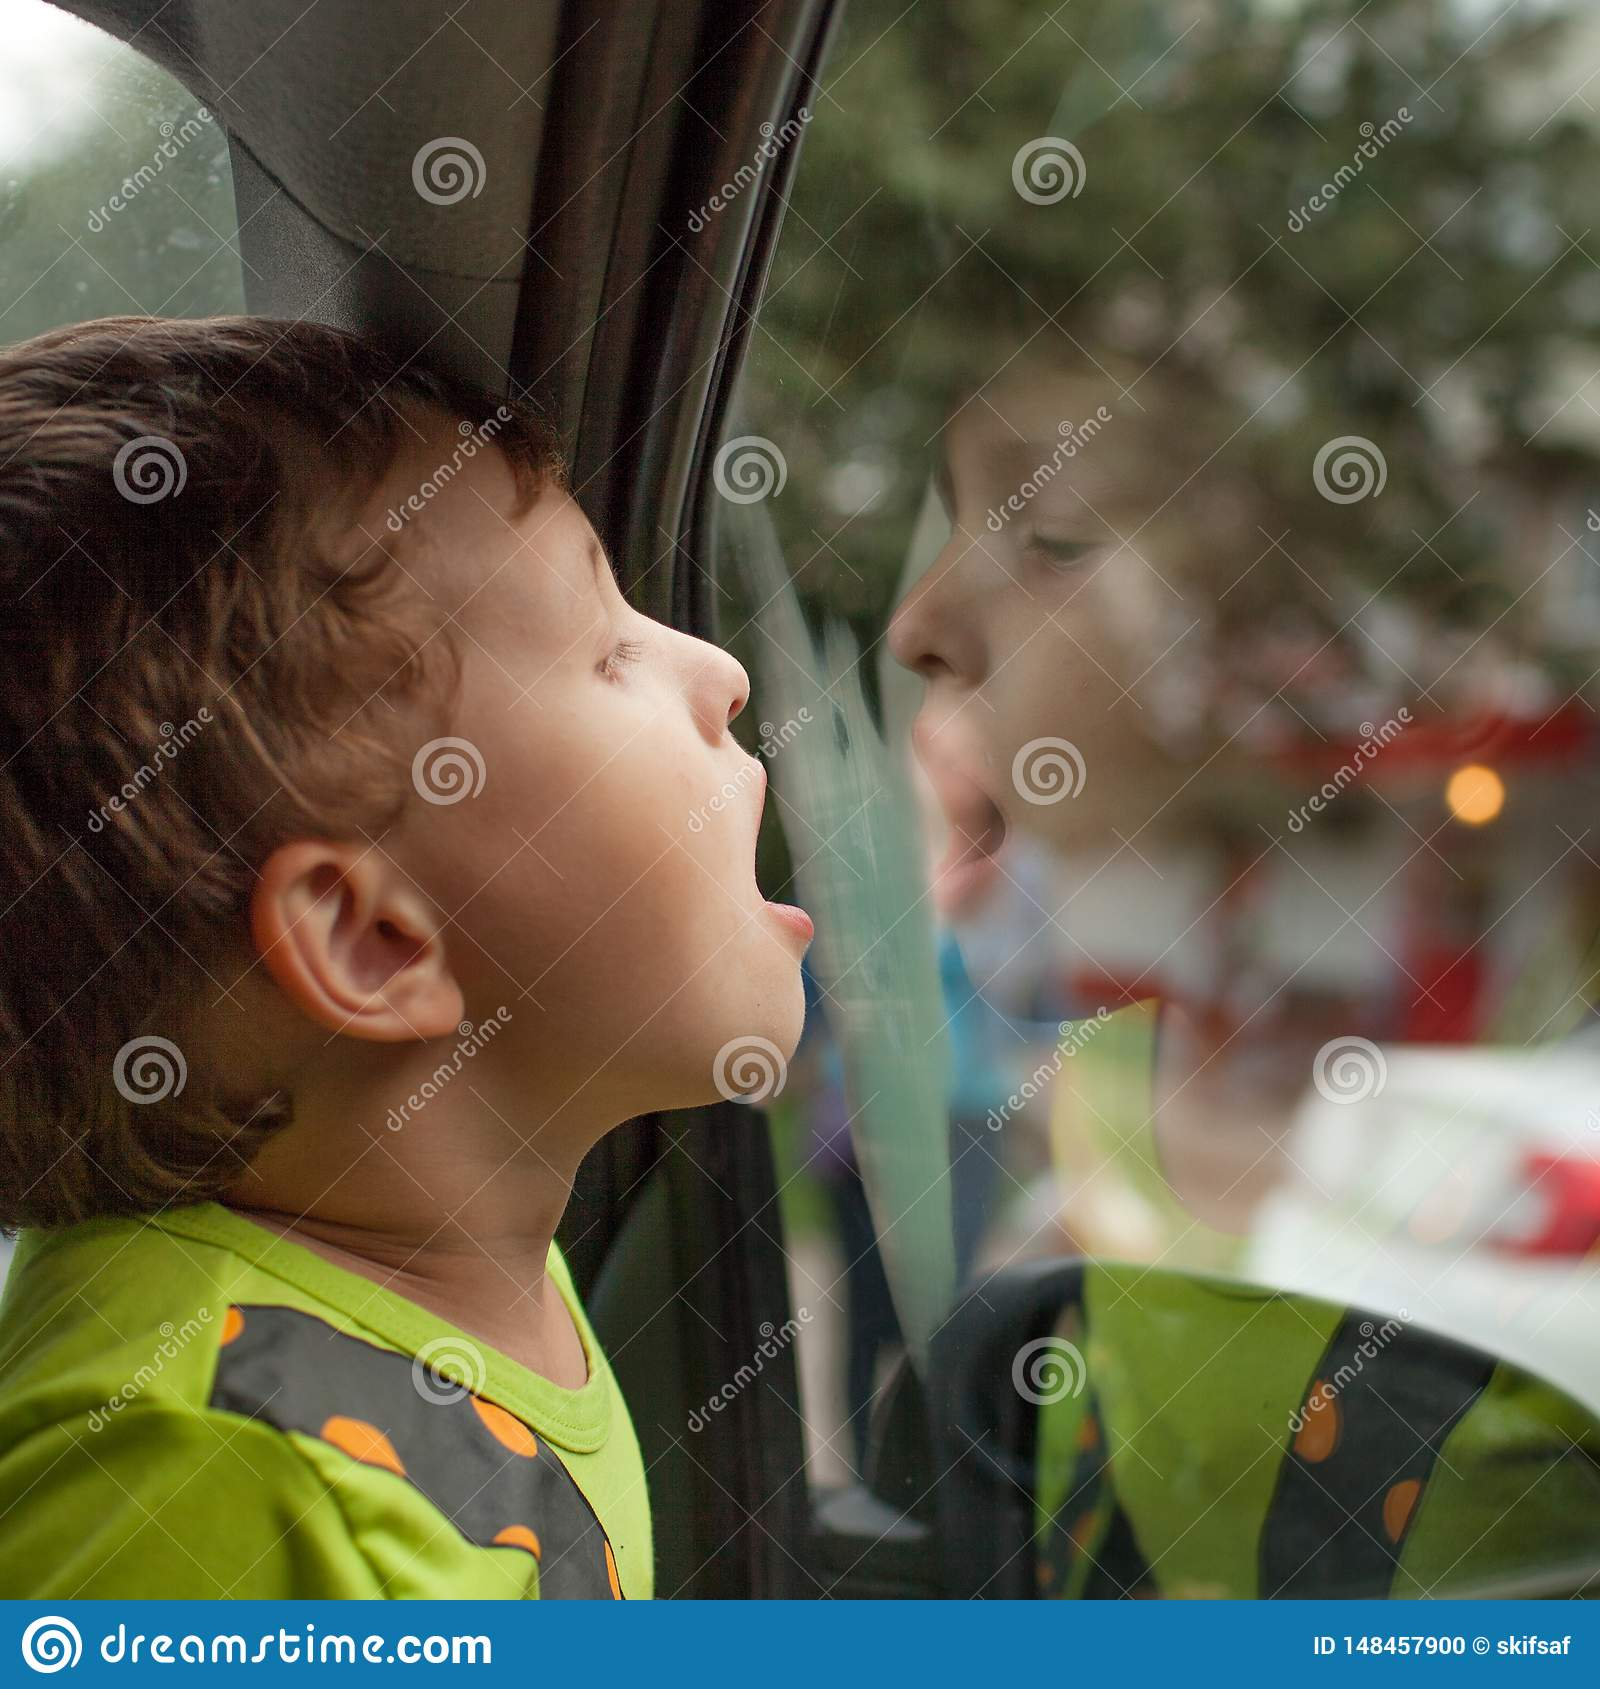 The child sits in the car alone